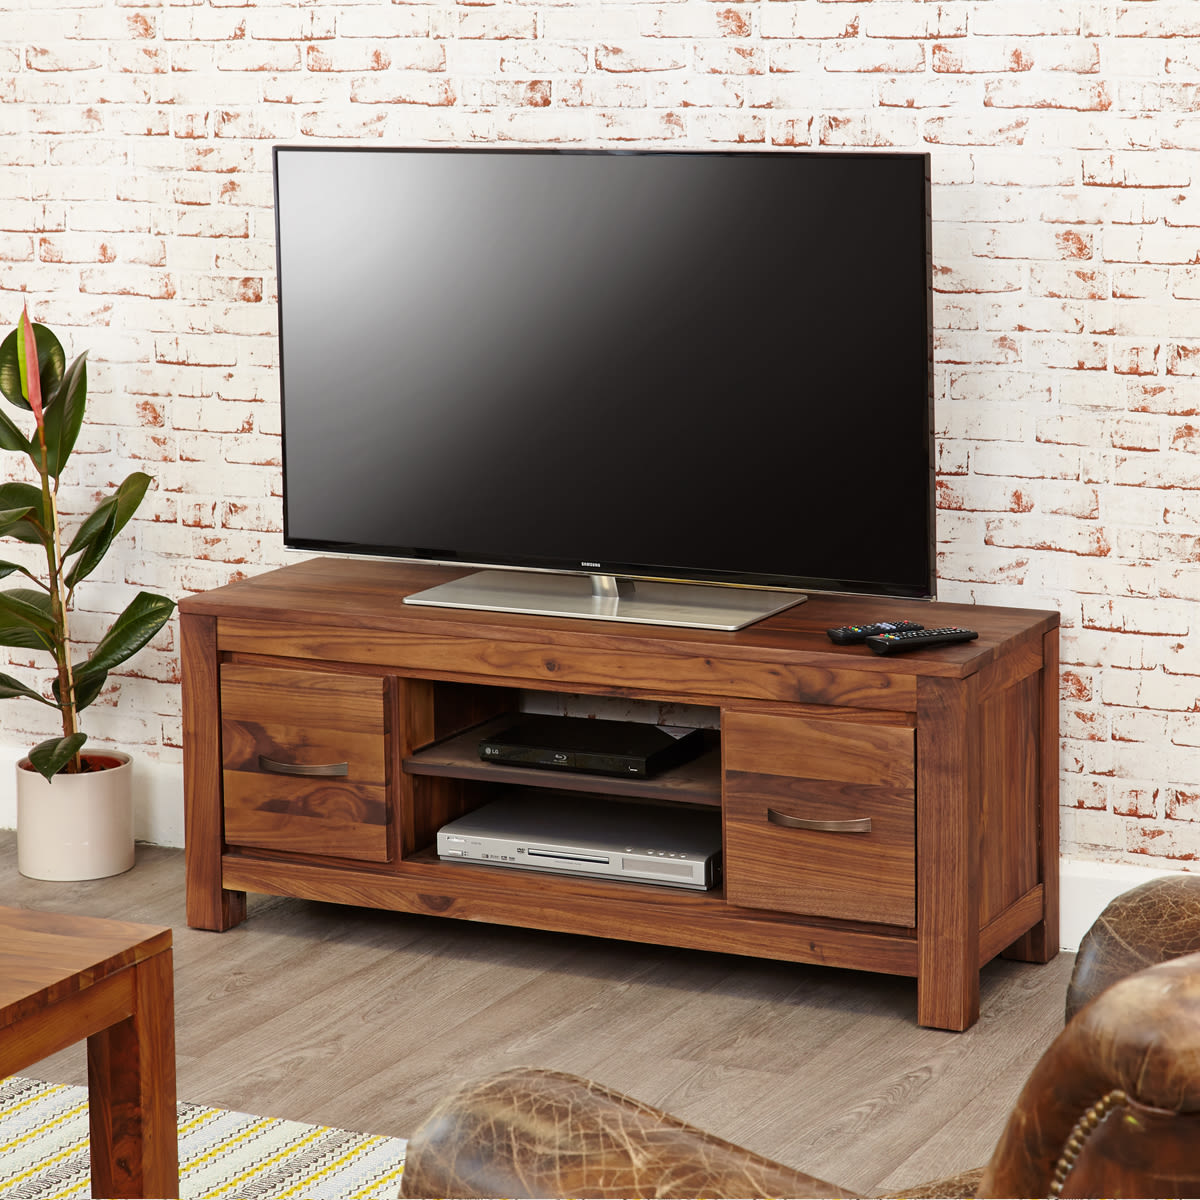 5 tips to choose the perfect TV cabinet